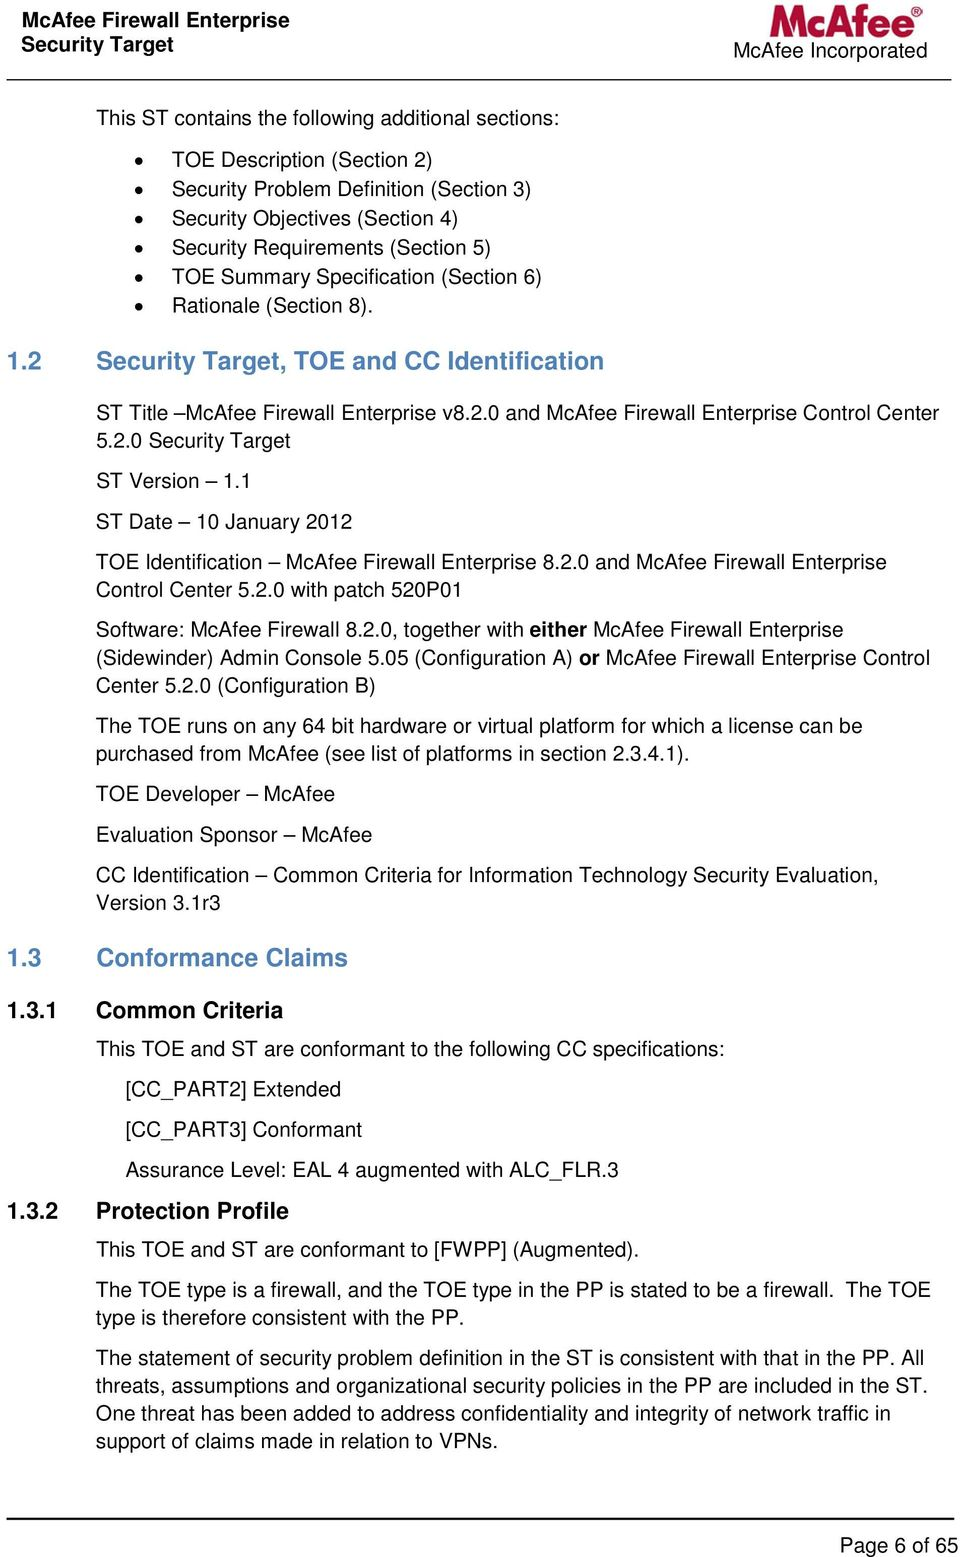 1 ST Date 10 January 2012 TOE Identification McAfee Firewall Enterprise 8.2.0 and McAfee Firewall Enterprise Control Center 5.2.0 with patch 520P01 Software: McAfee Firewall 8.2.0, together with either McAfee Firewall Enterprise (Sidewinder) Admin Console 5.